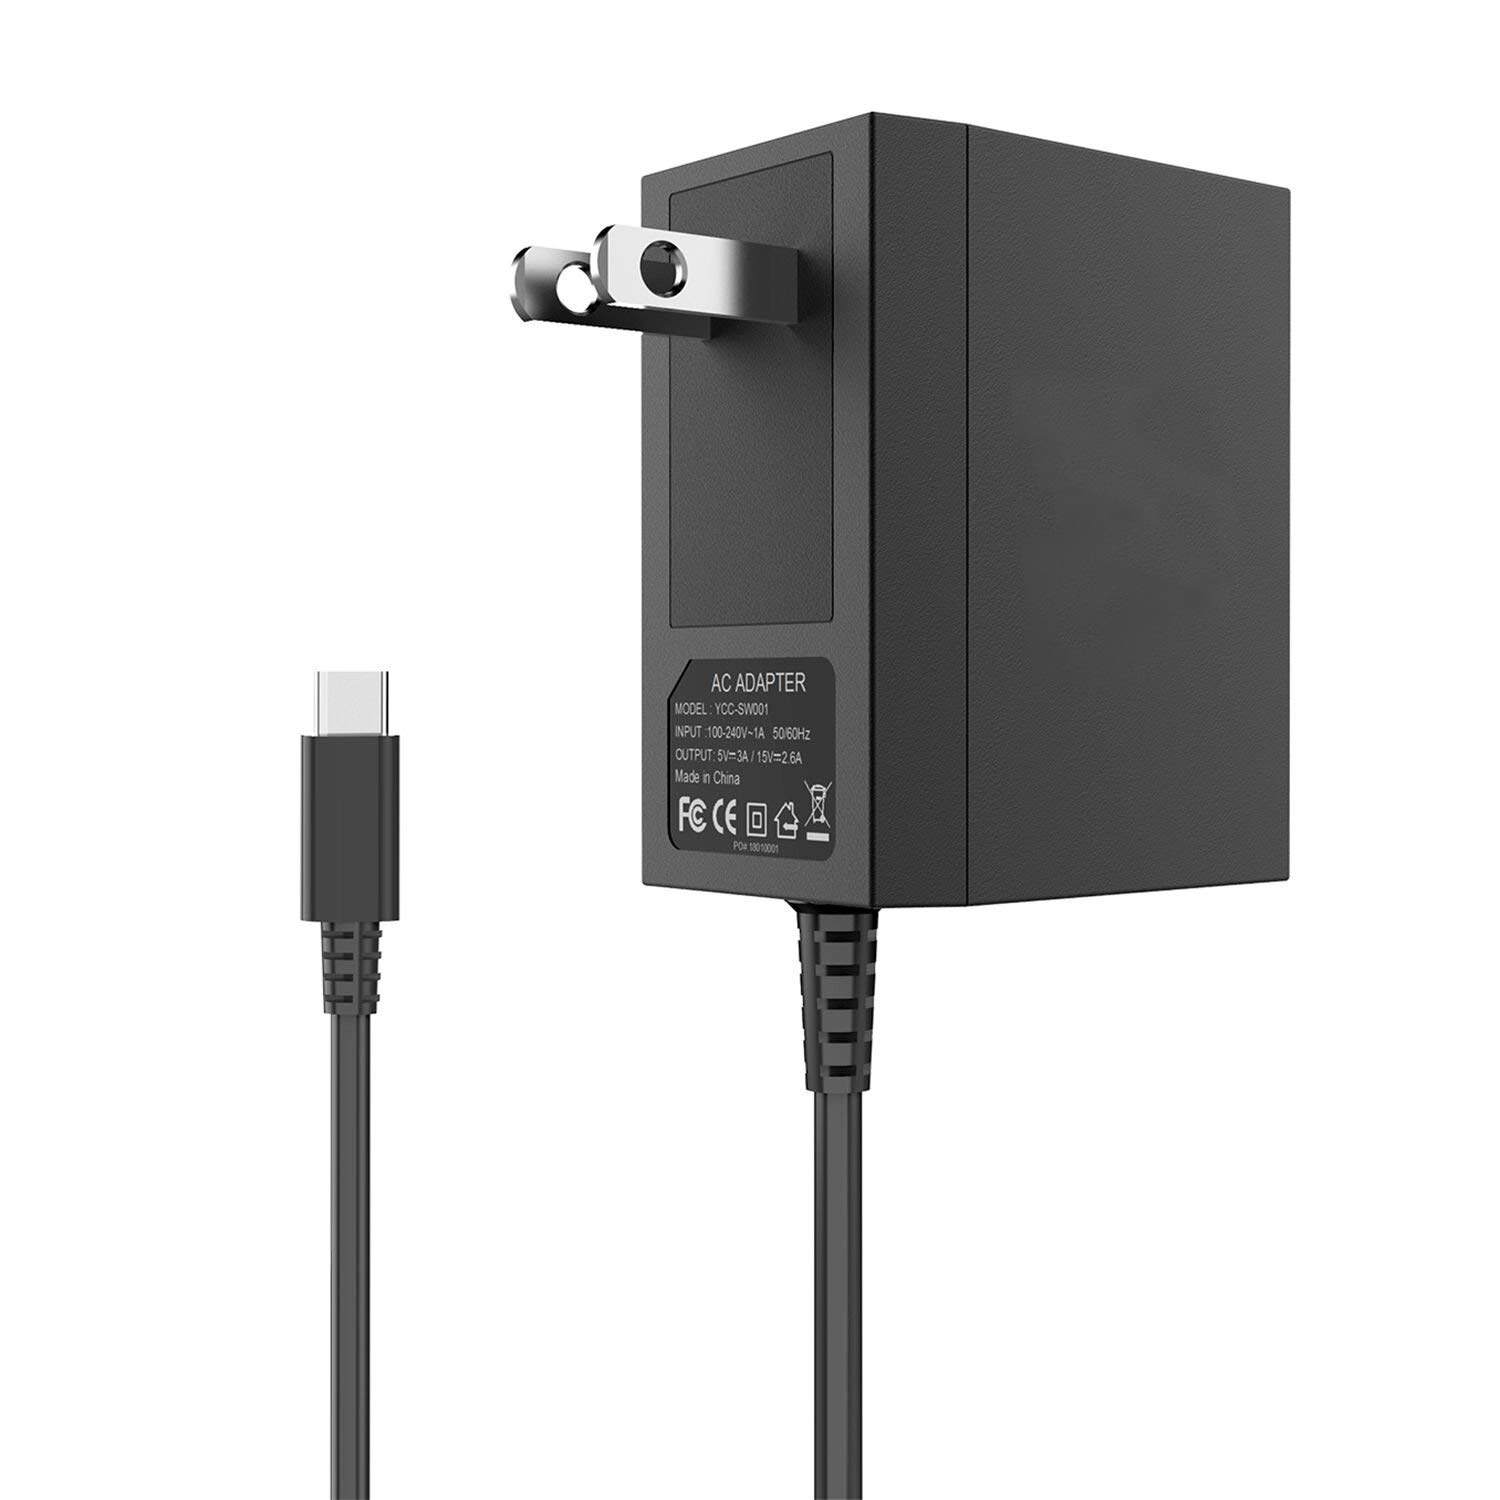 Switch Charger for Nintendo Switch Power Adapter, Type C Fast Charger Compatible with Nintendo Switch/Type C Port Devices, 12V/2A, Support TV Mode Power Supply for Nintendo Switch